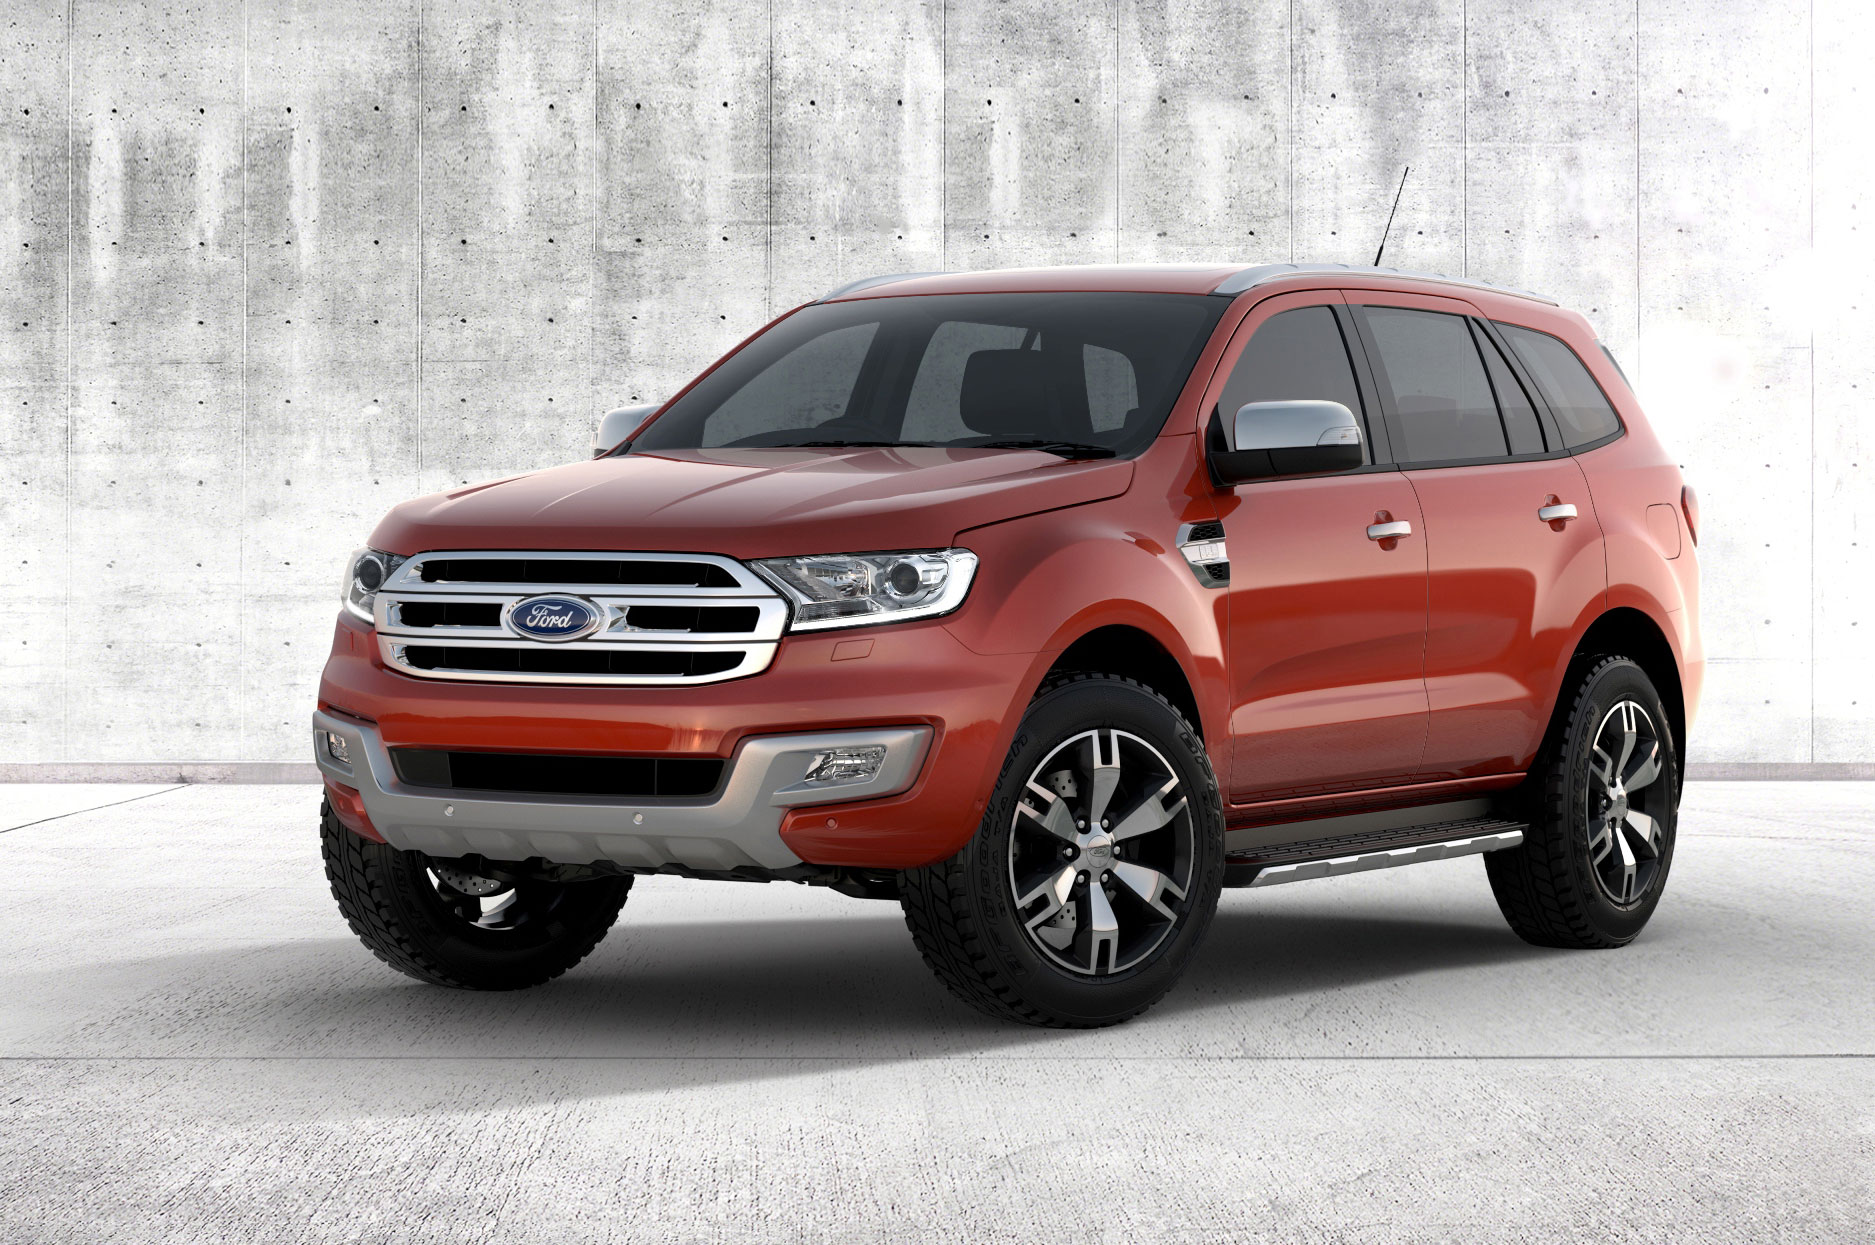 Ford Everest Suv Revealed In China Not Coming To U S Motor Trend